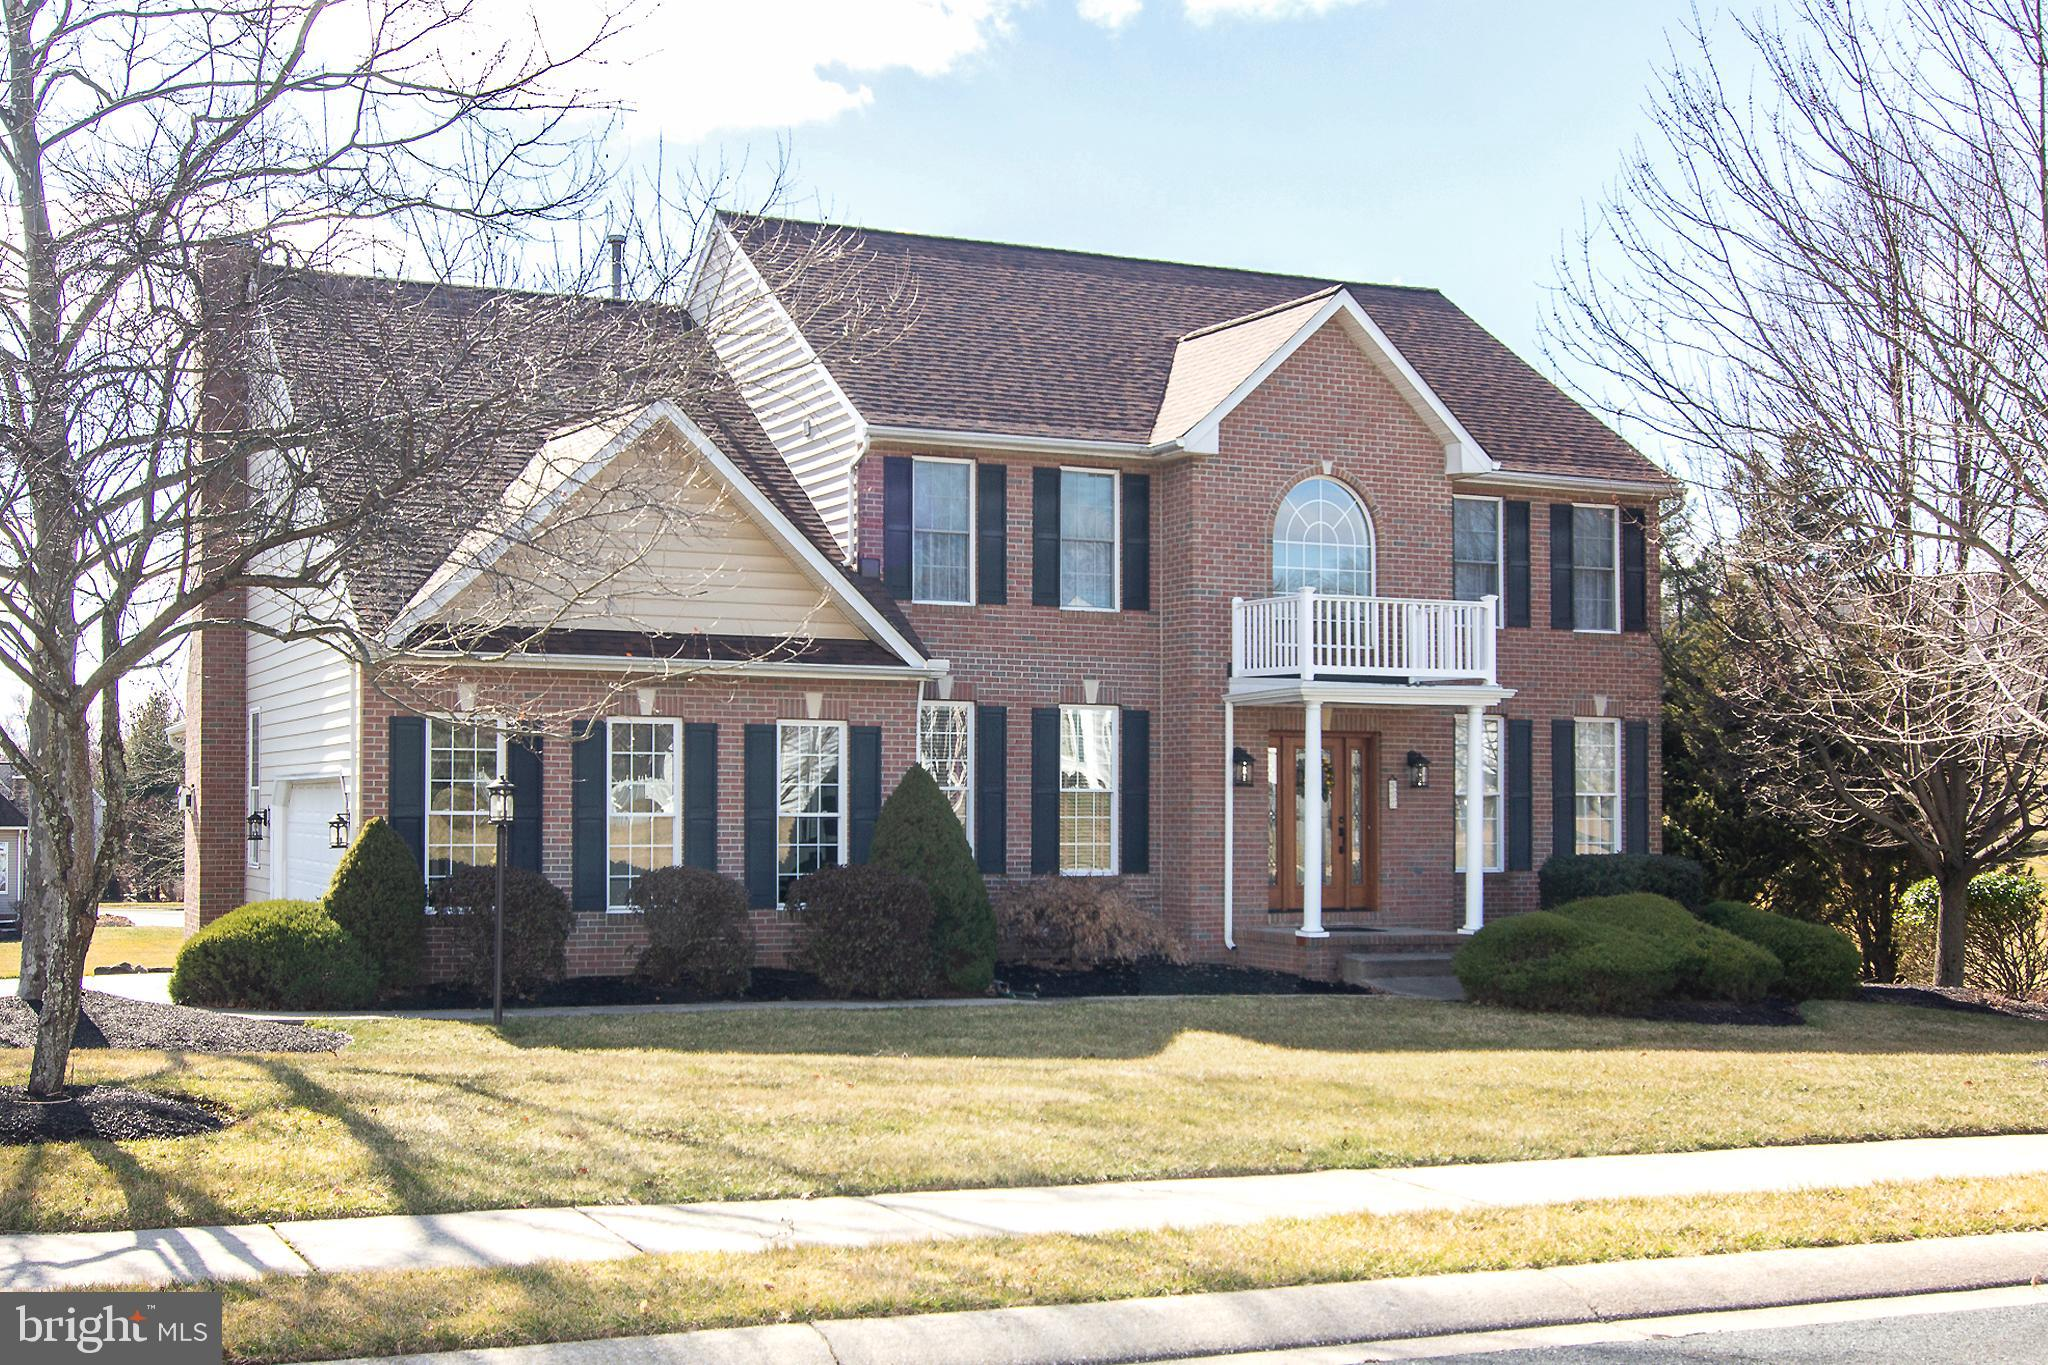 507 TYLNEY HALL COURT, WESTMINSTER, MD 21158